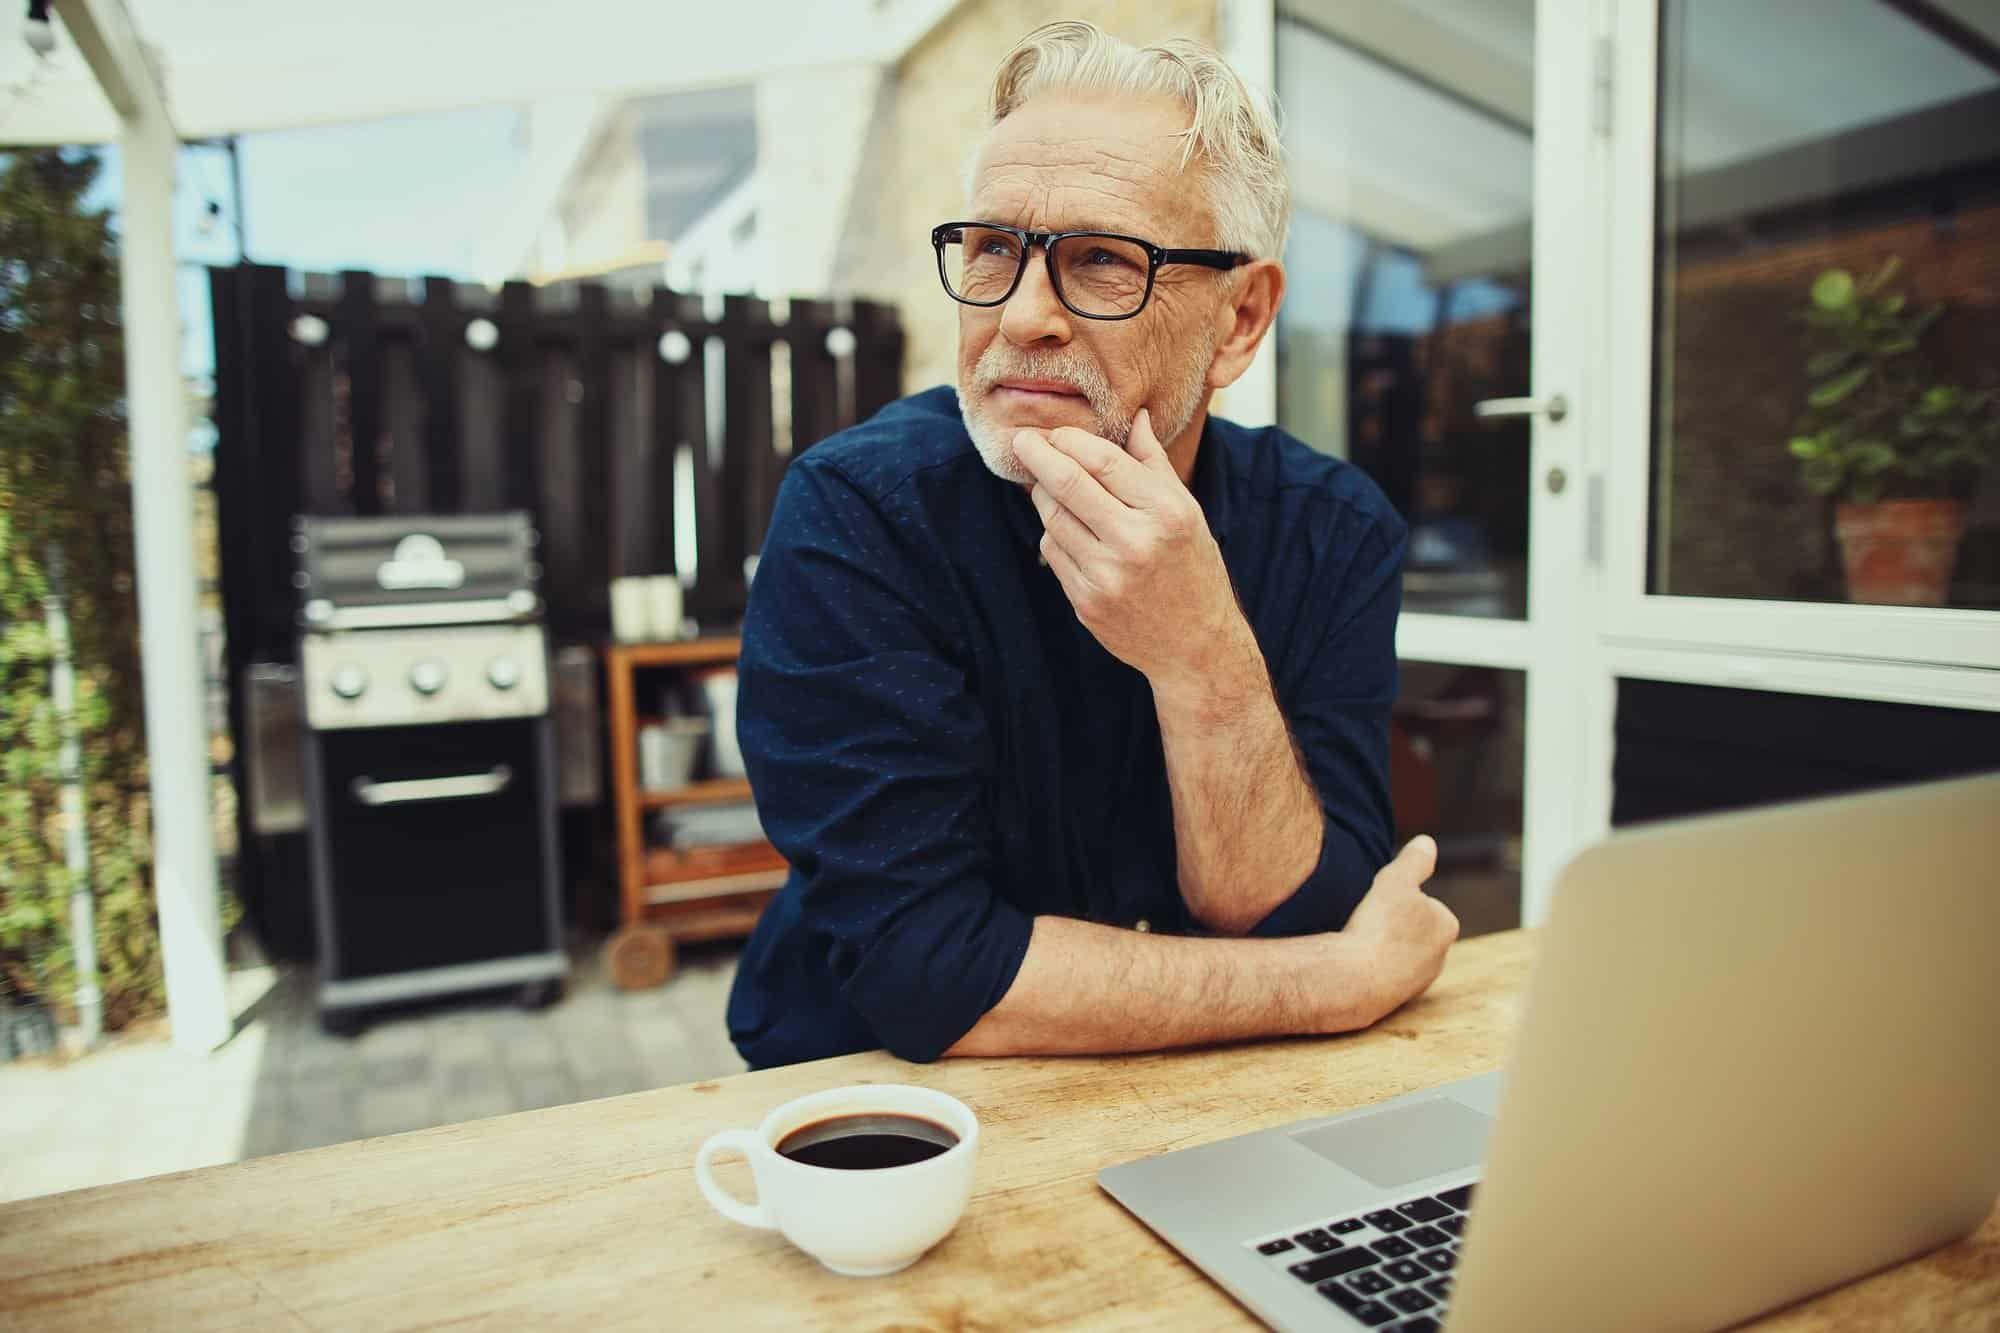 Senior man deep in thought with a laptop and coffee